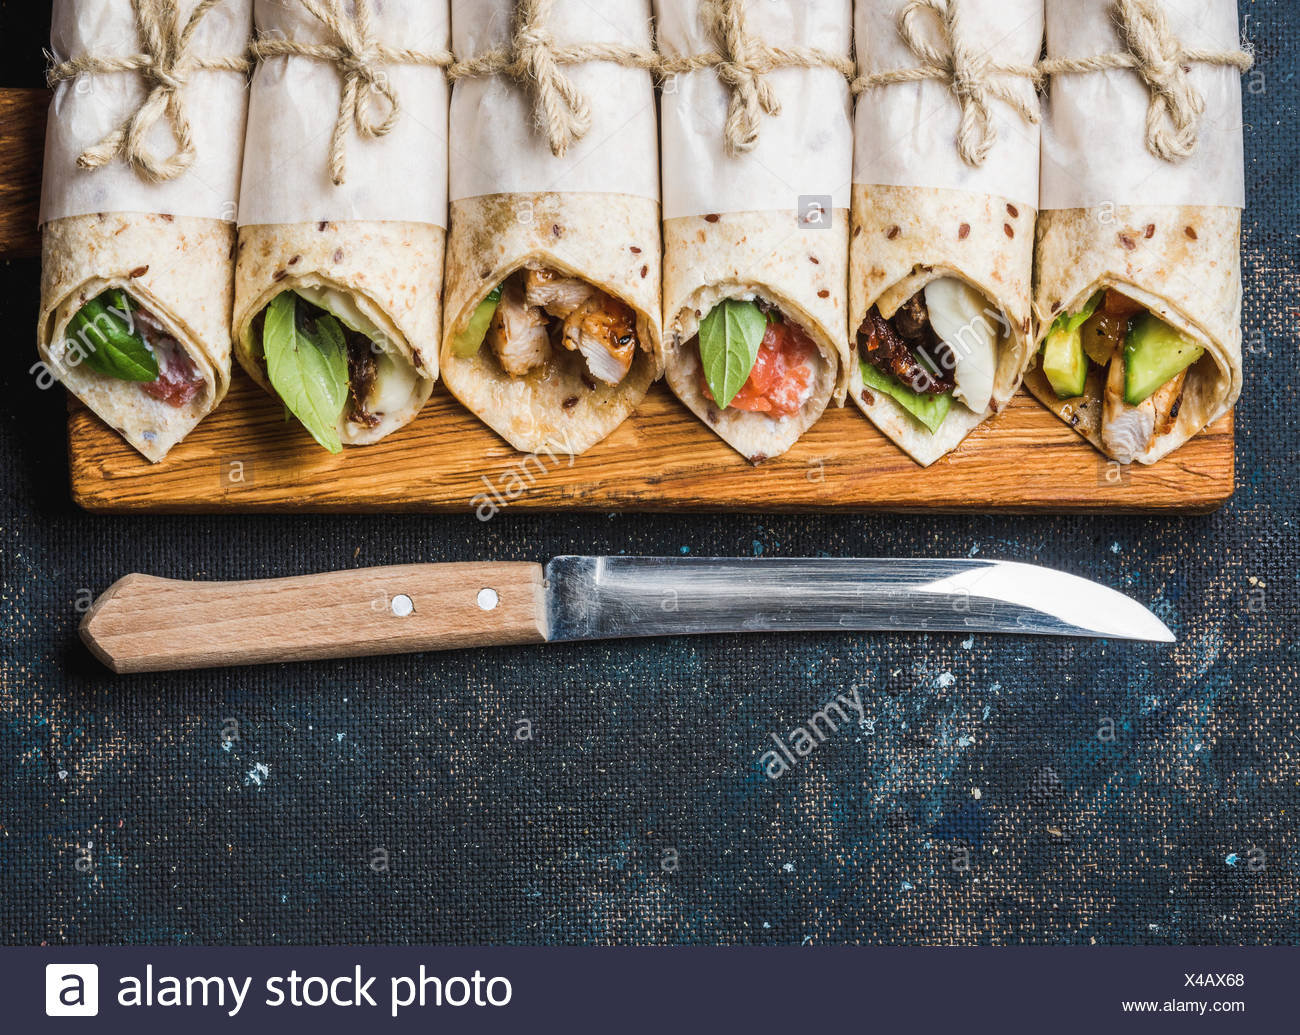 Tortilla wraps with various fillings on rustic wooden board and knife over dark blue painted plywood background, top view, copy - Stock Image